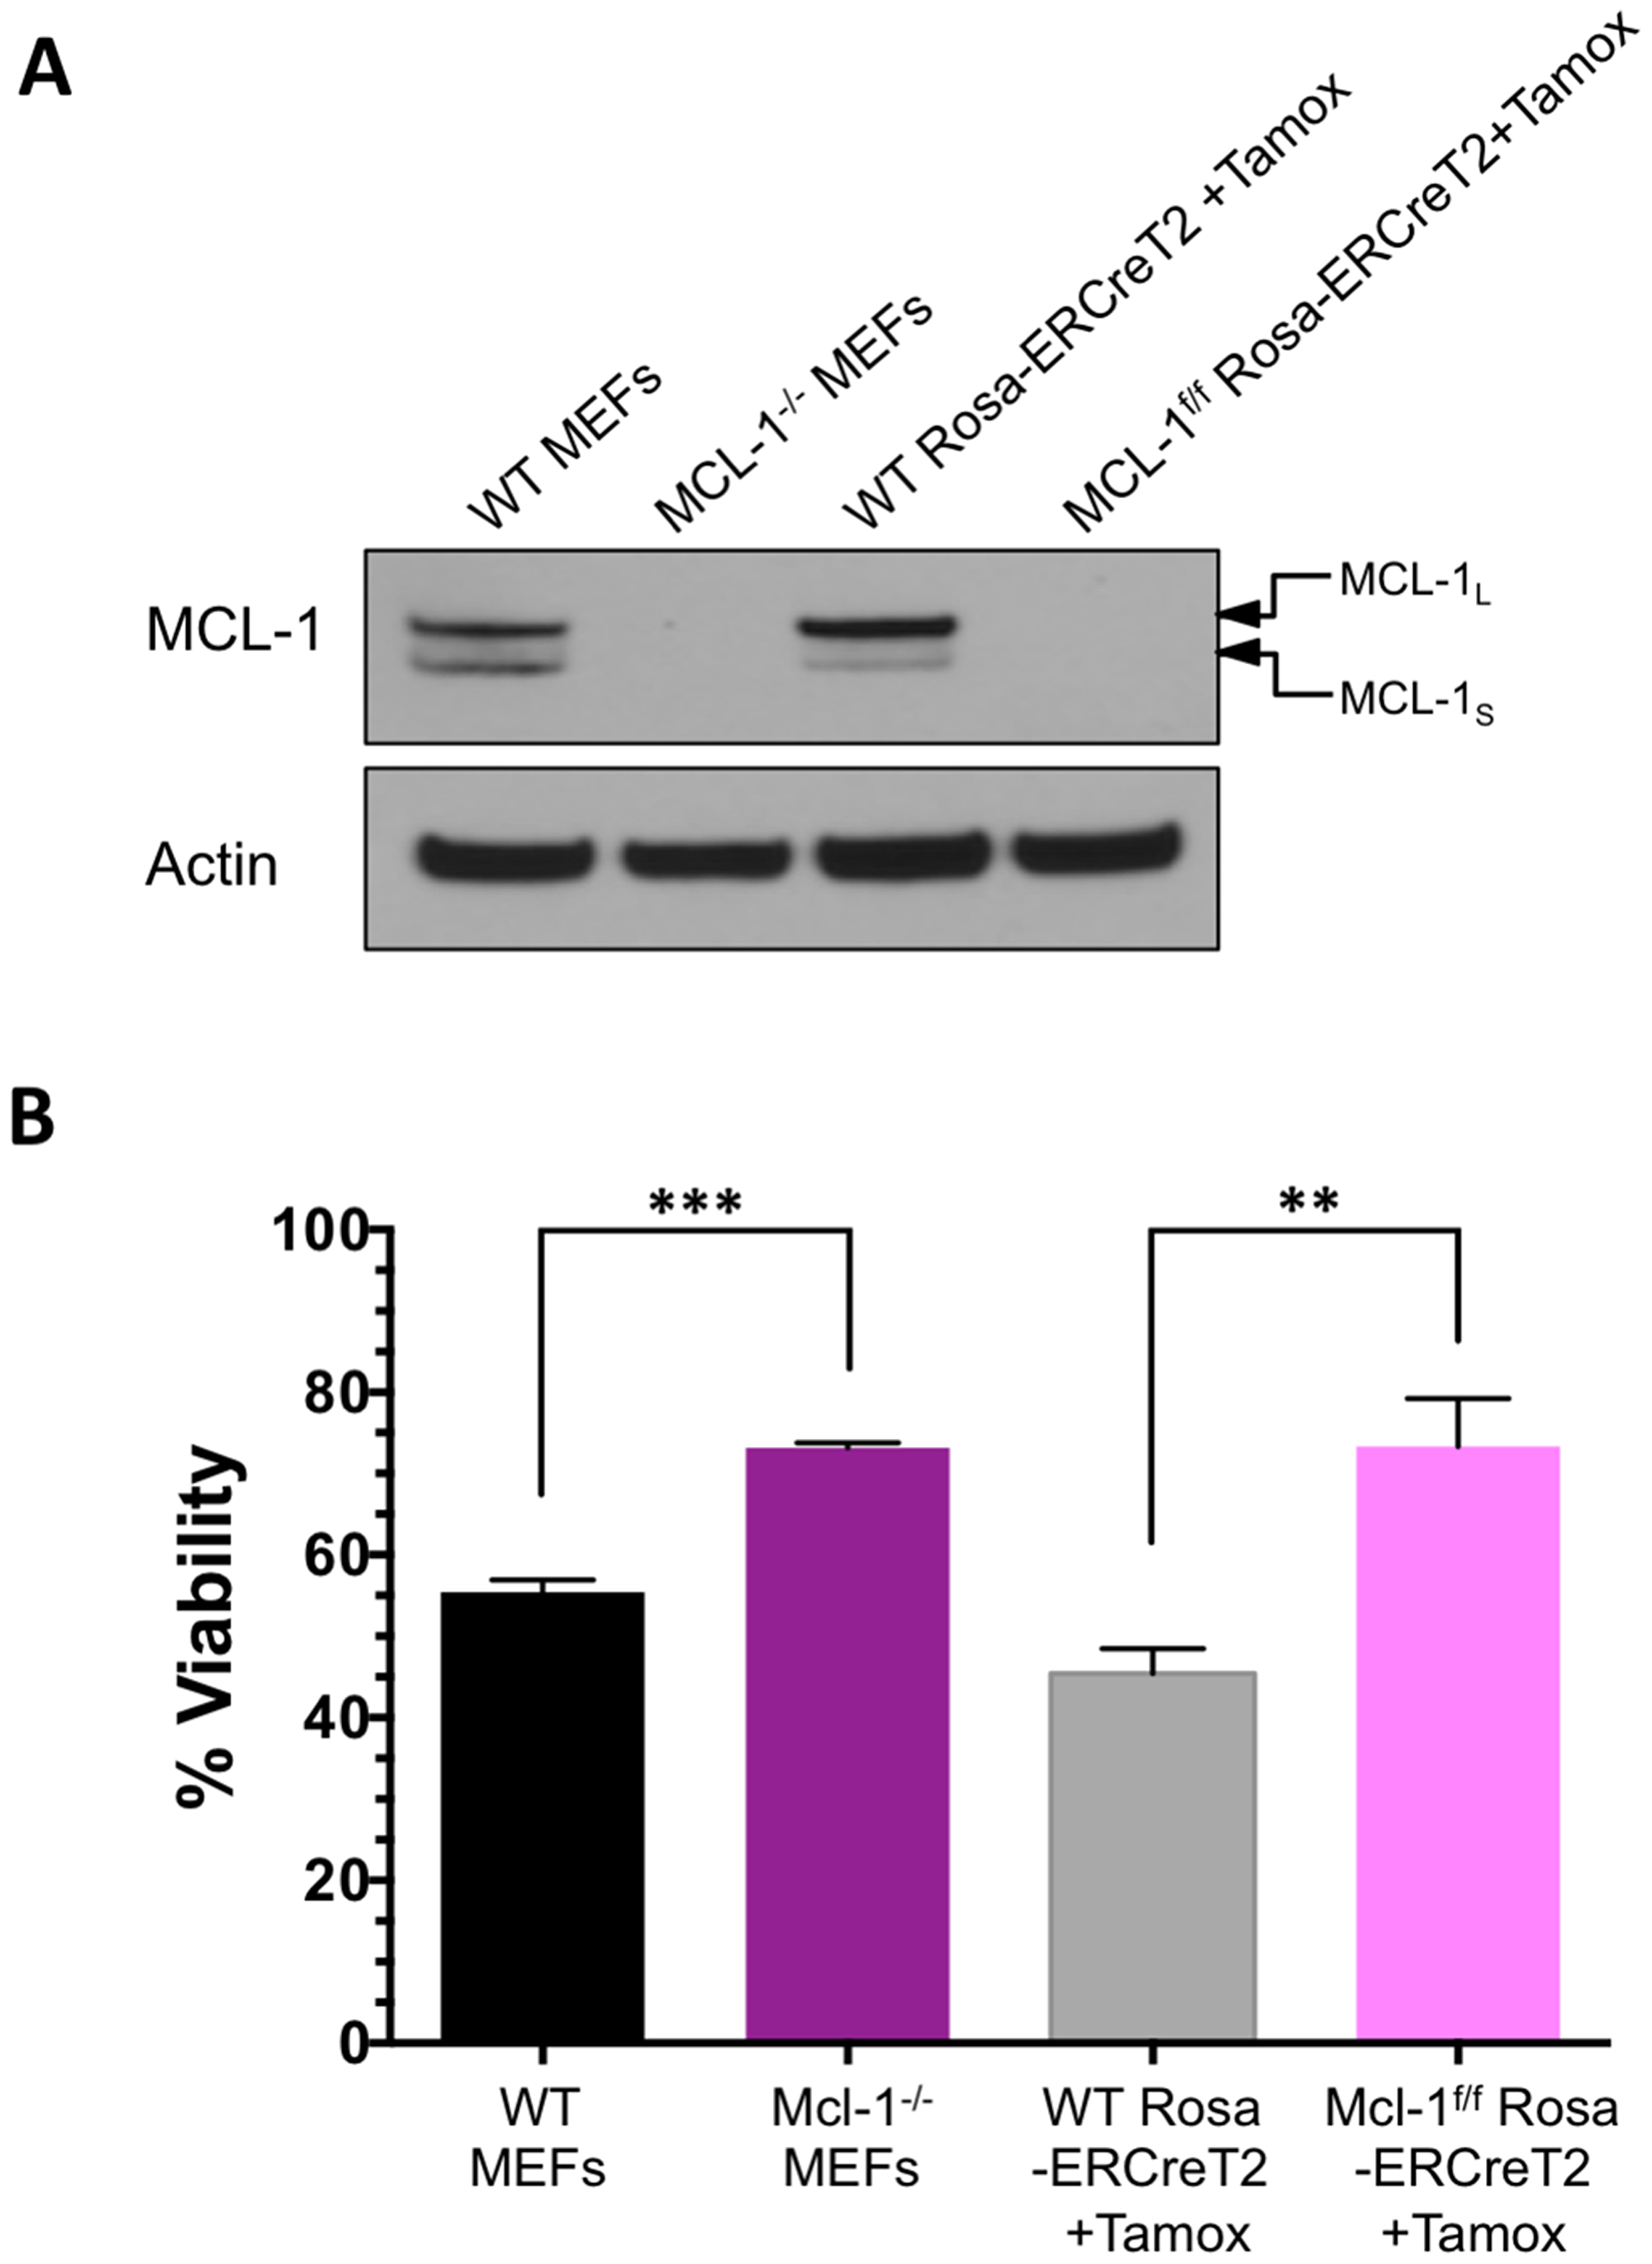 Absence of MCL-1 leads to resistance against BIM SAHBA-induced apoptosis.